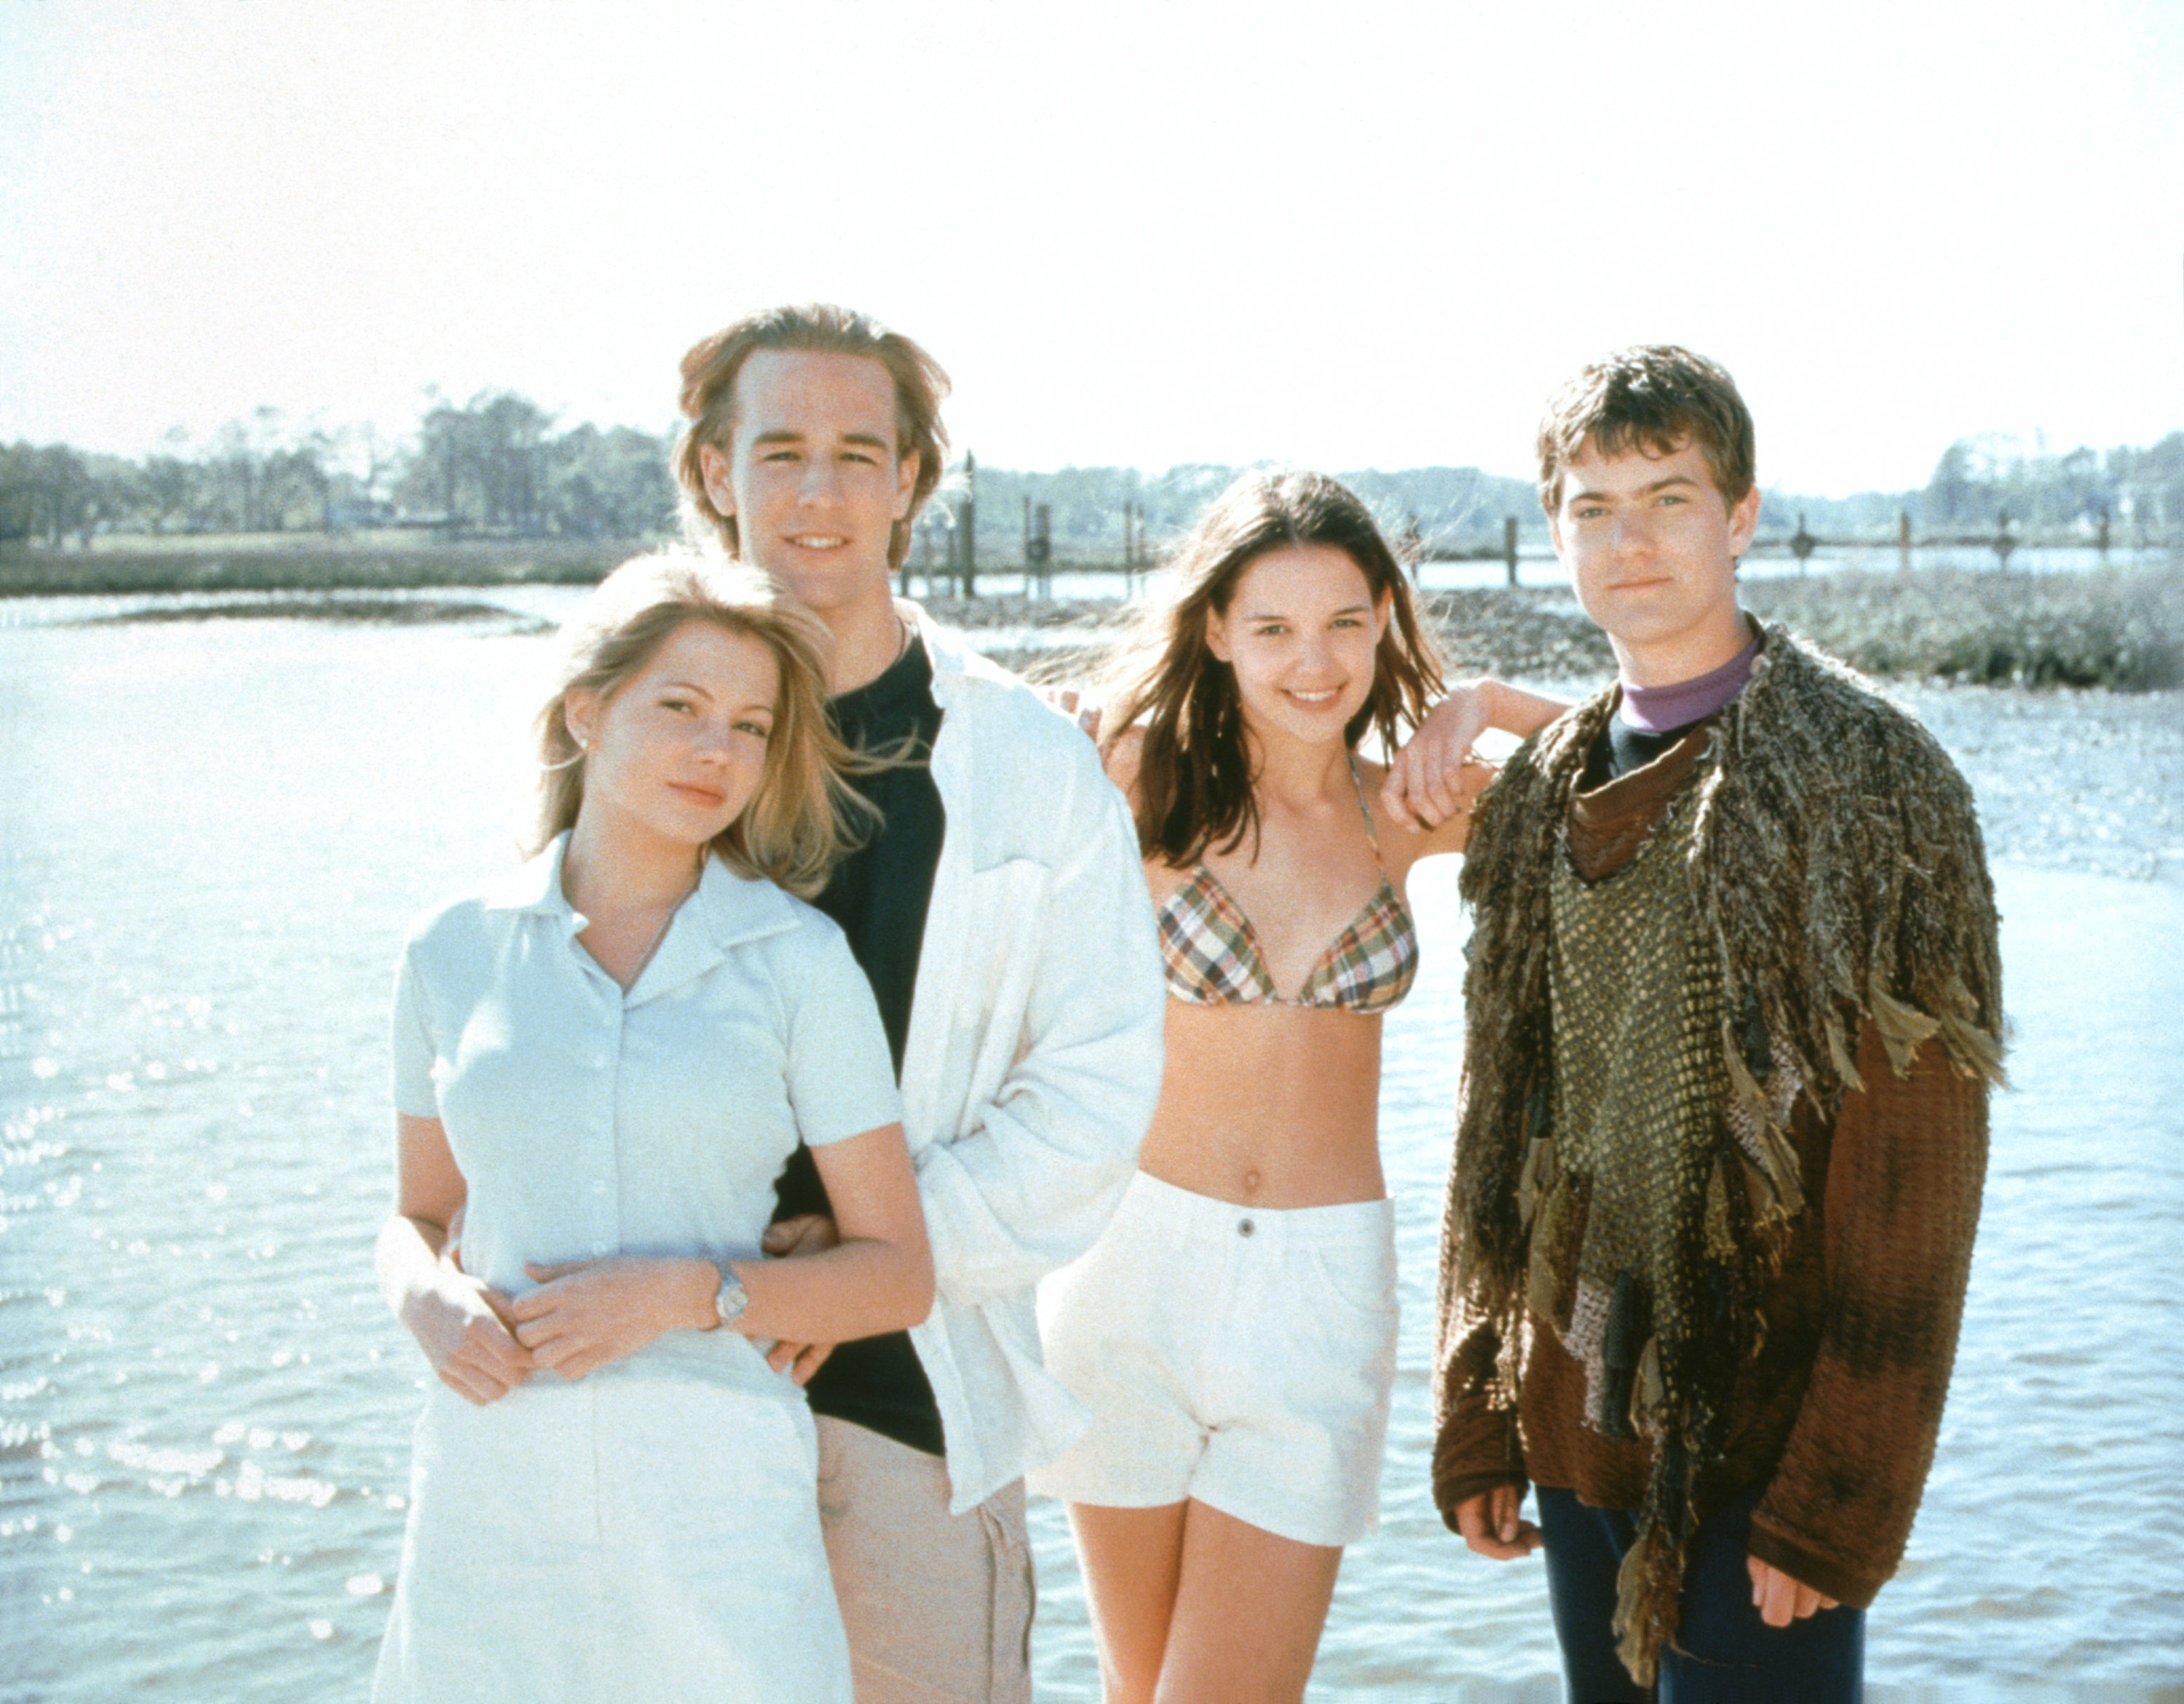 The cast of Dawson's Creek in a promotional photo